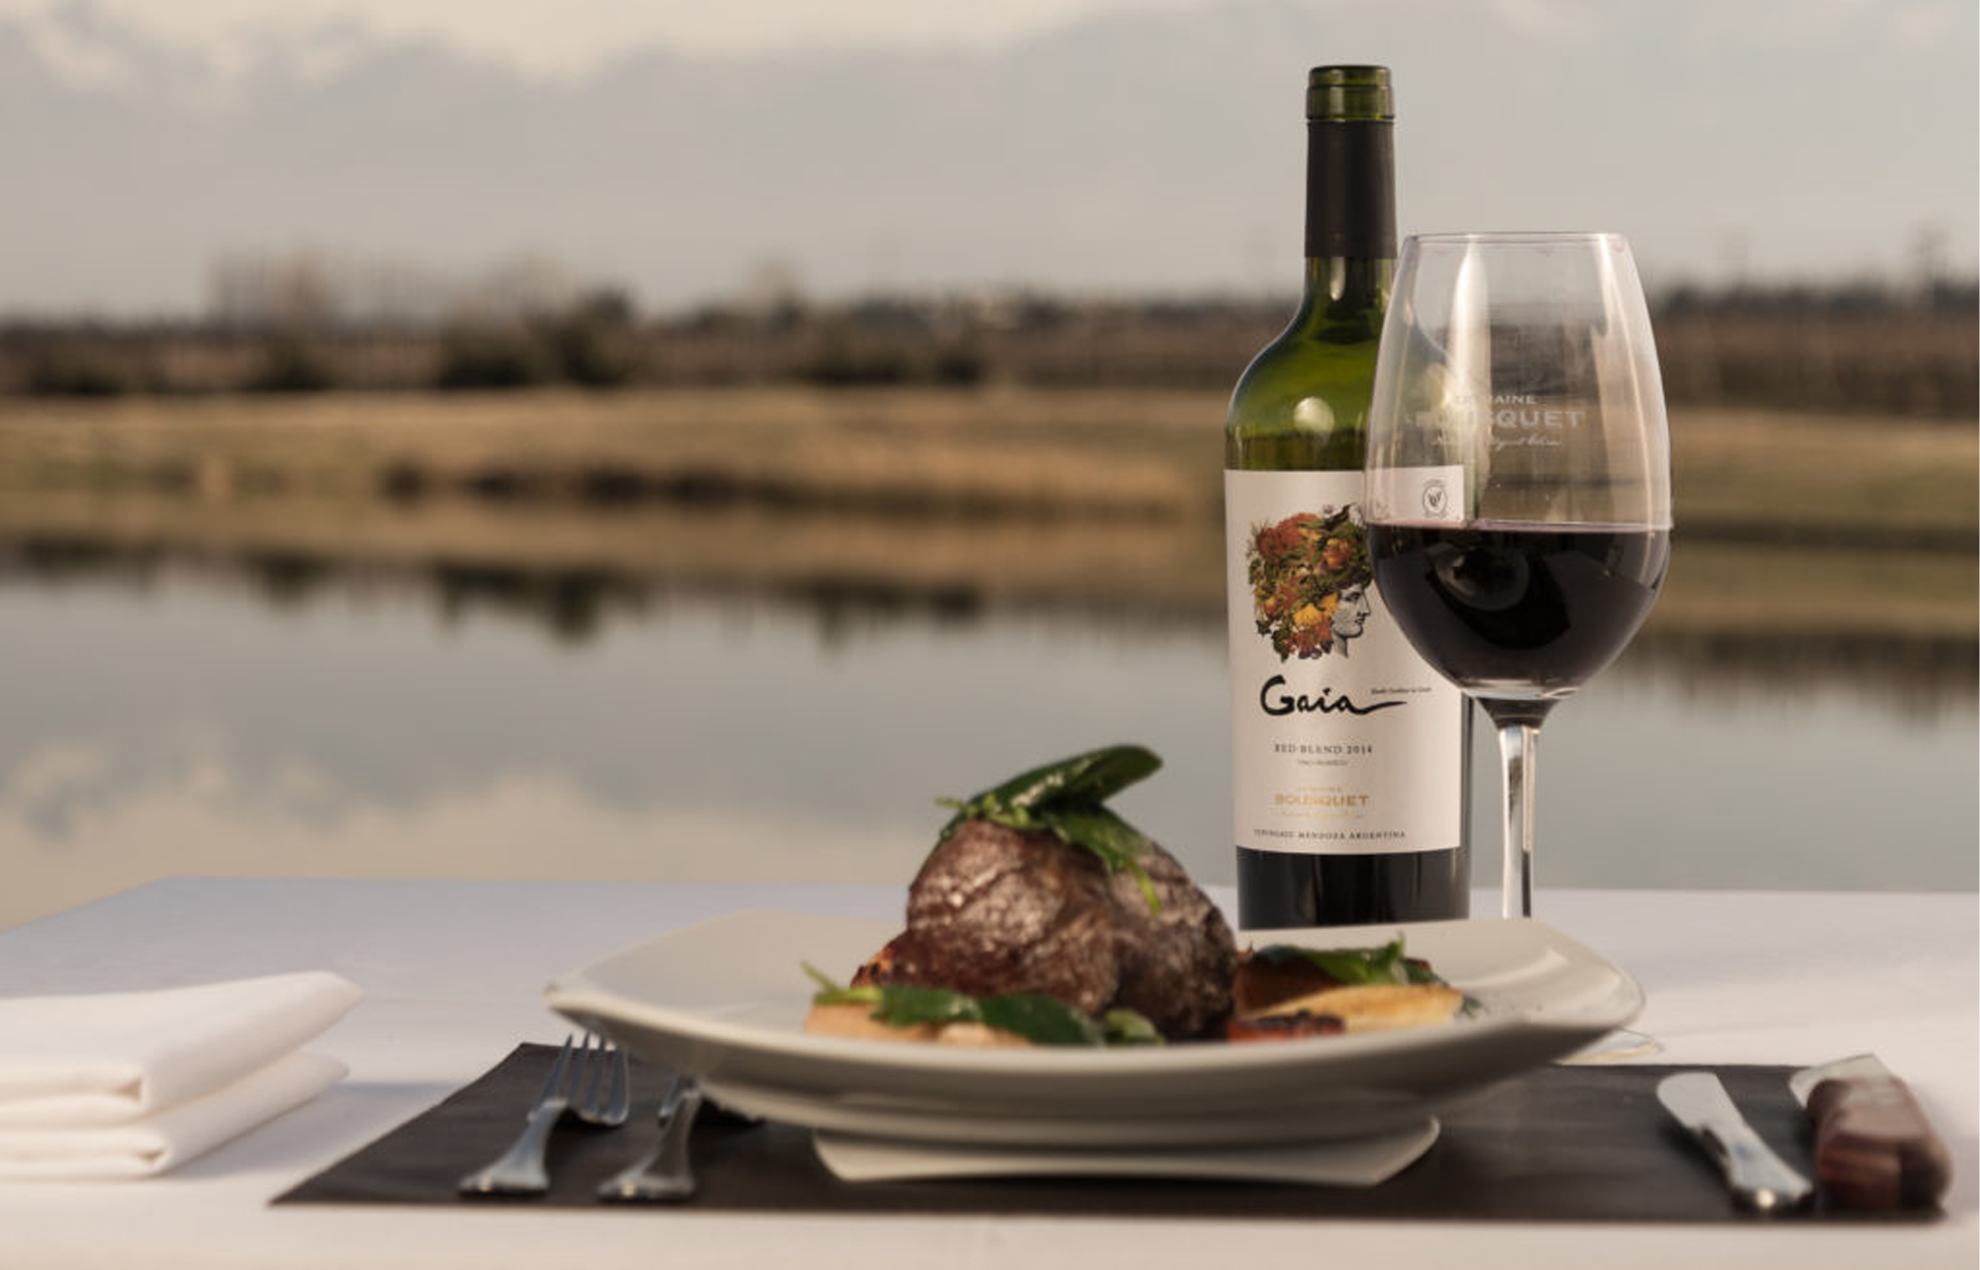 Dinner plate setting with food, a filled wine glass, and a wine bottle, with a landscape view of water.